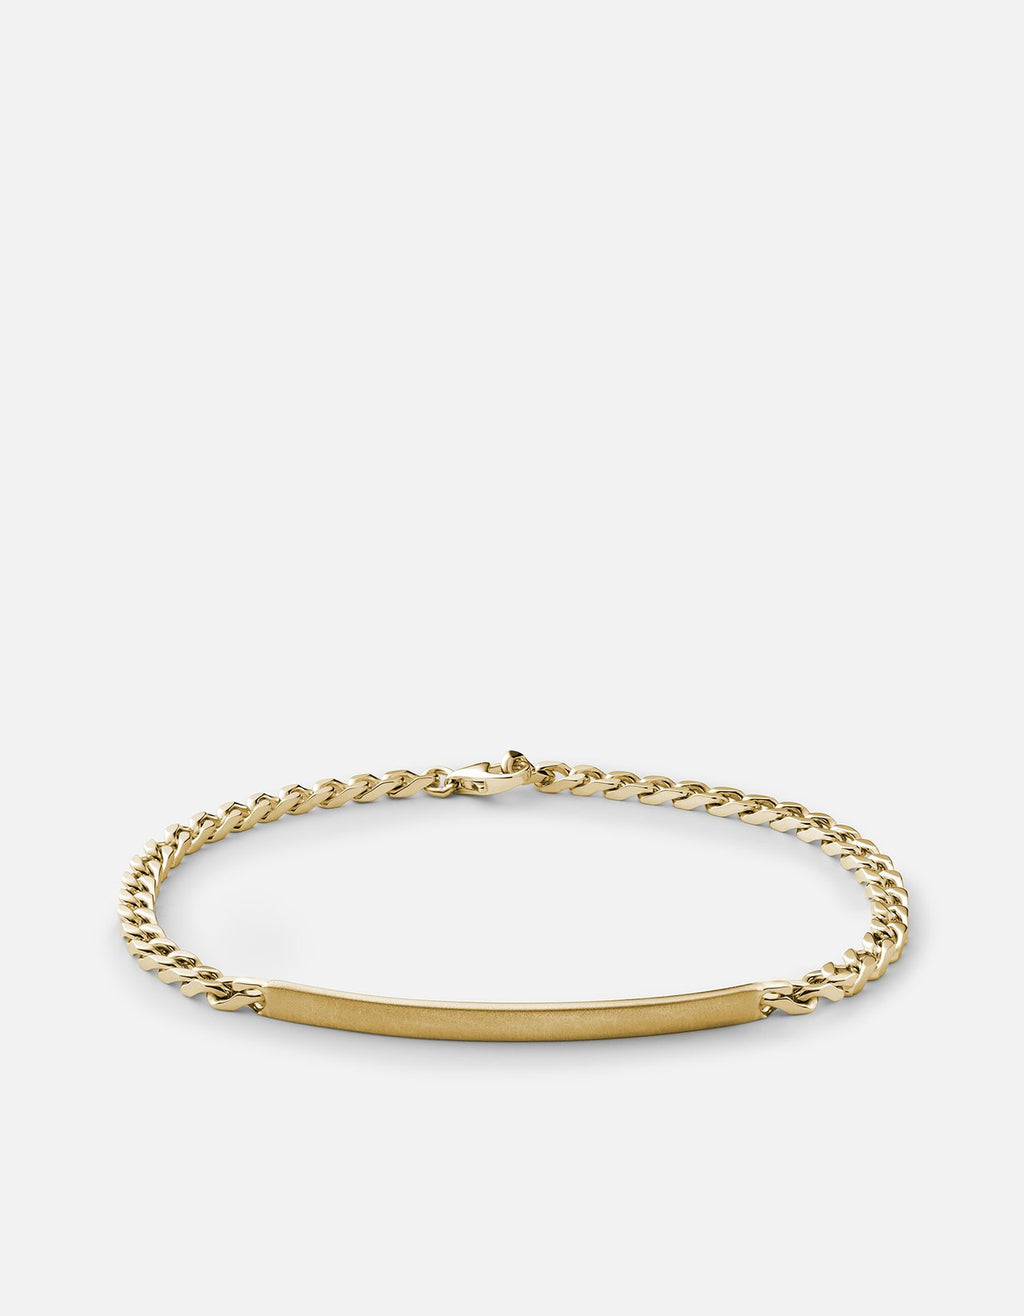 Miansai ID Chain Bracelet, 14k Yellow Gold, Matte